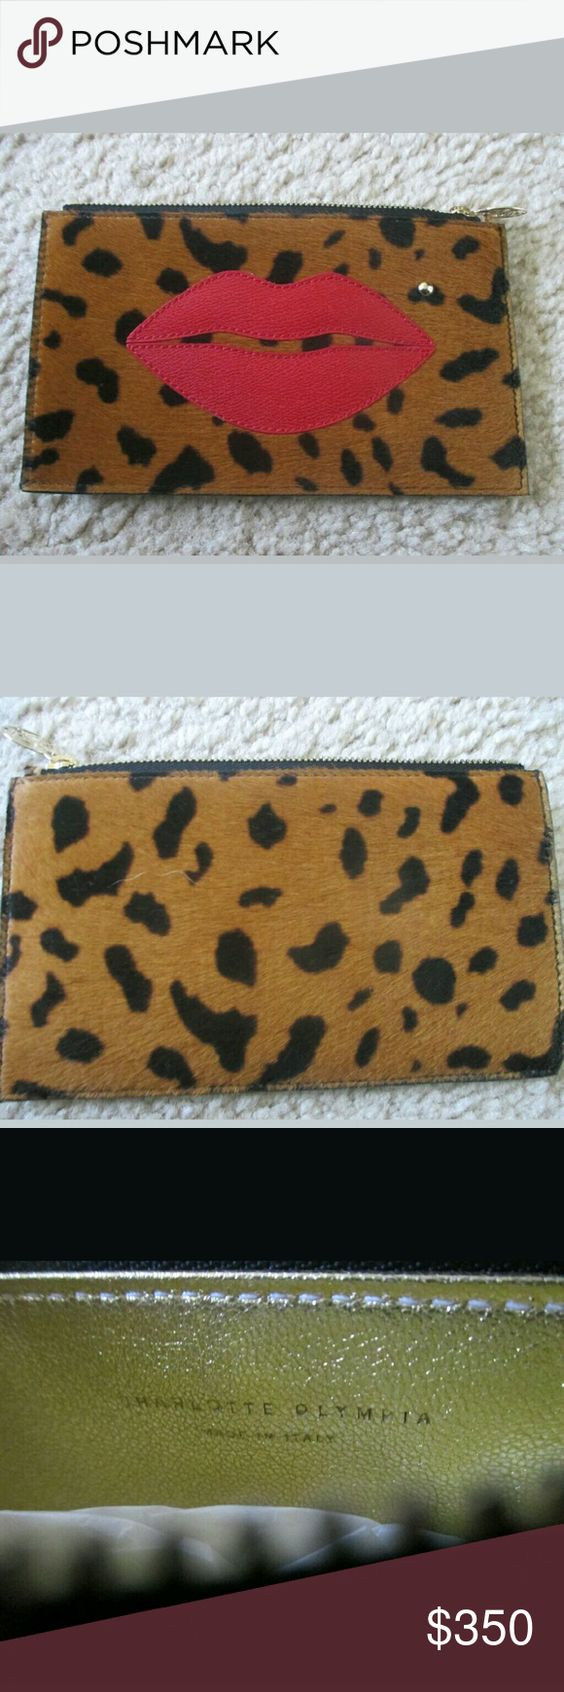 """Charlotte Olympia Pouty clutch purse Pony hair NEW Charlotte Olynpia  Pouty Purse  Brand New never used still has tissue paper inside  Animal Print    Zips Closed  This petite zip-up pouch in hyena printed pony hair is kissed by iconic Charlotte Olympia red lips and finished with a brass stud beauty spot.  Authentic   Pouch with appliqu? lips and beauty spot detail. Printed ponyskin.   Width: 6.8""""/17.5cm. Height: 3.9""""/10cm    Made in Italy.  This item will only be shipped to a confirmed…"""